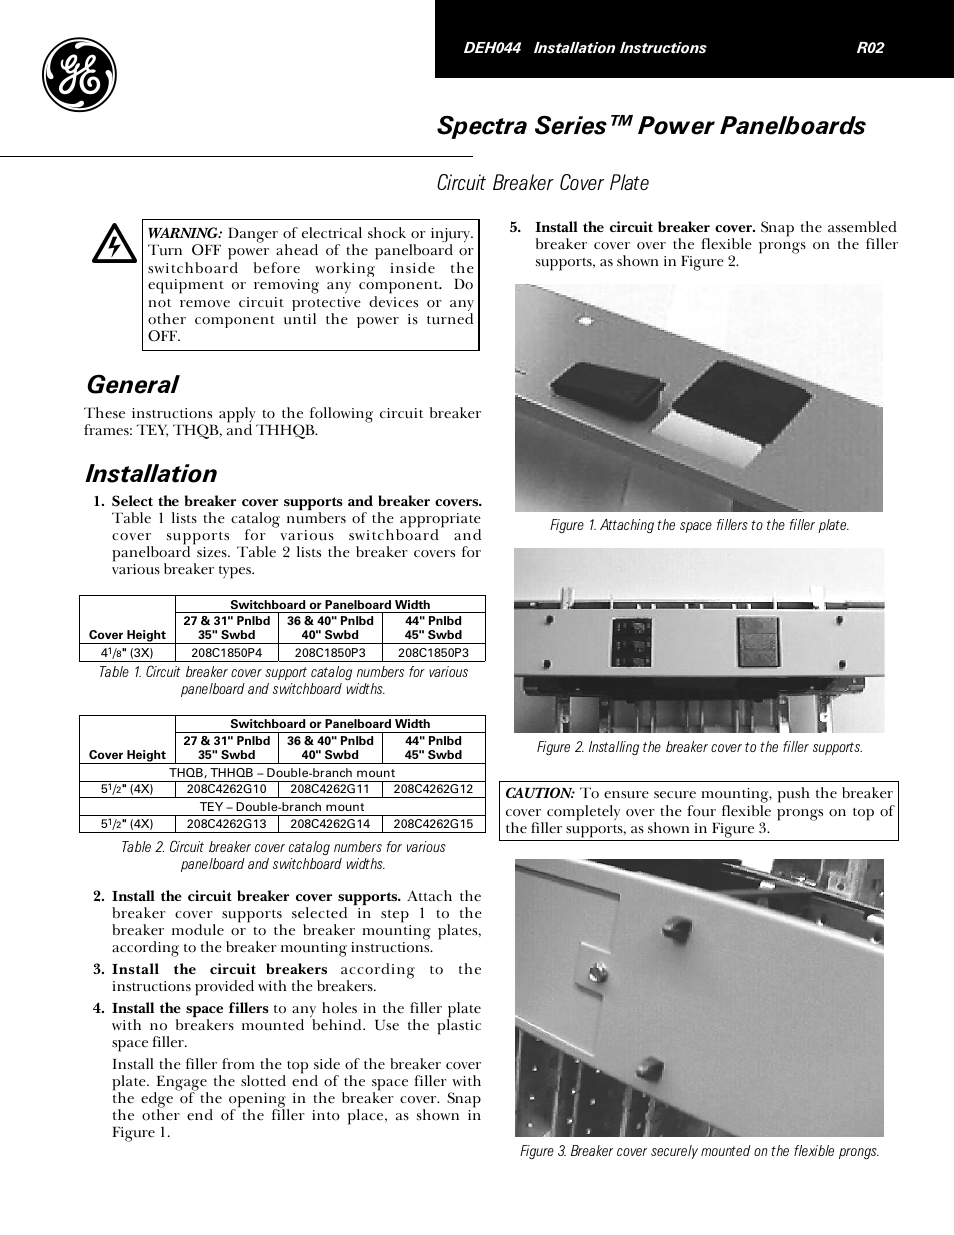 Circuit Breaker Panel Manual Guide